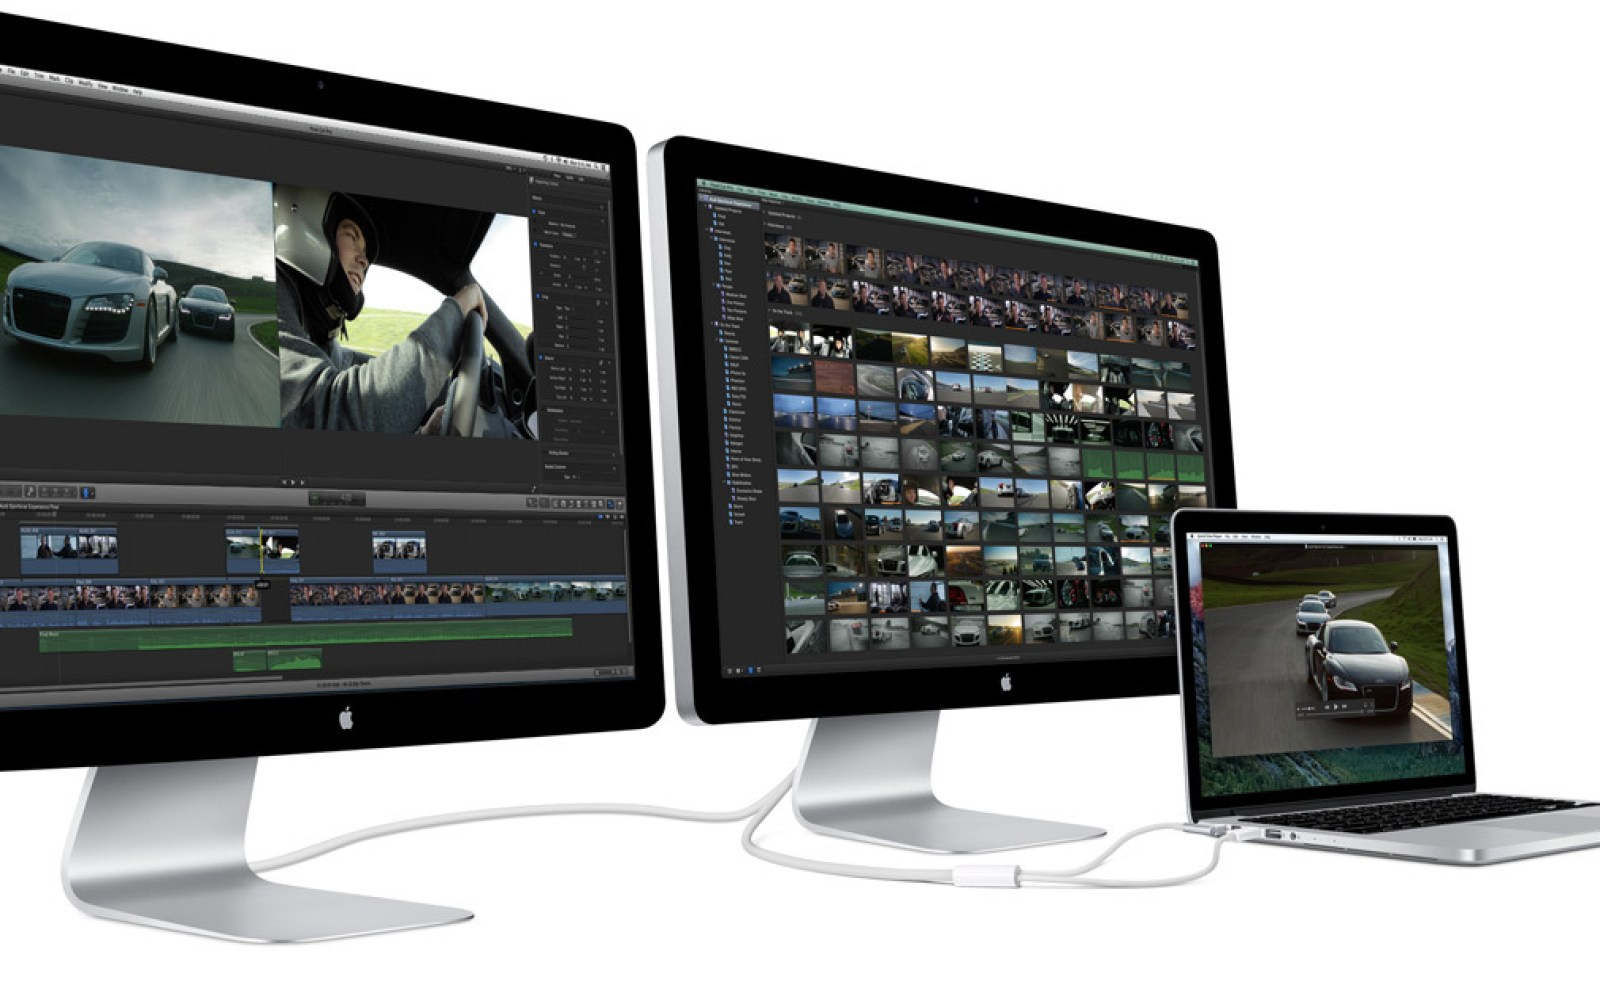 Apple officially discontinues Thunderbolt Display, points users towards third-party options